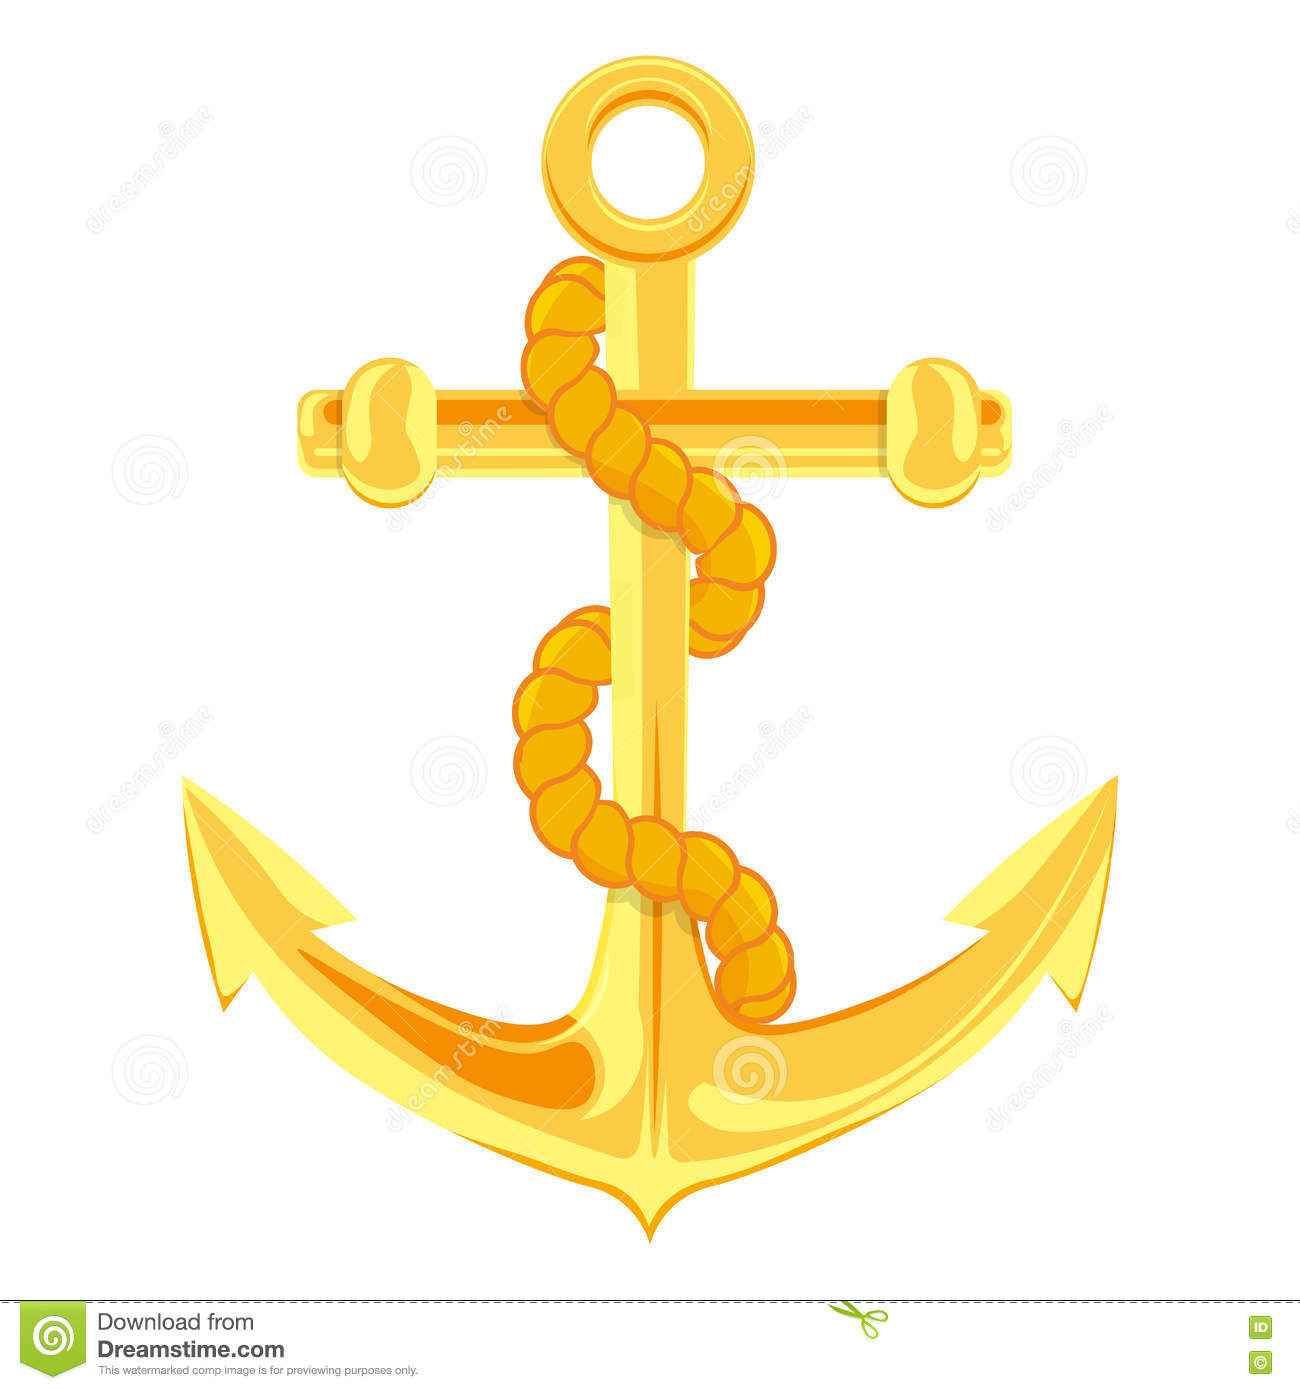 anchor clipart no background - photo #19